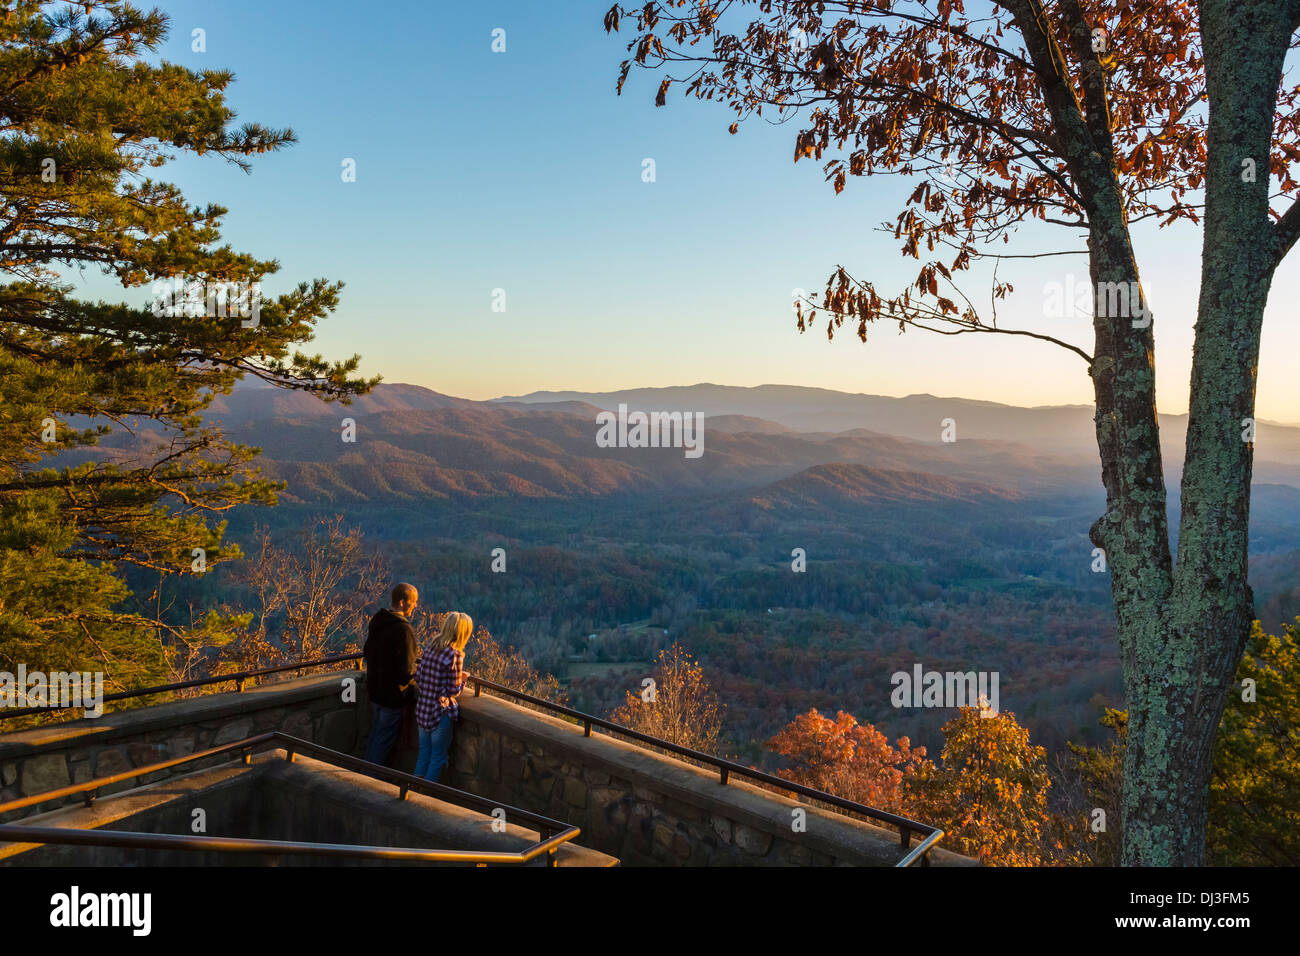 View over the Great Smoky Mountains National Park at sunset from Look Rock overlook, Foothills Parkway, Tennessee, USA - Stock Image